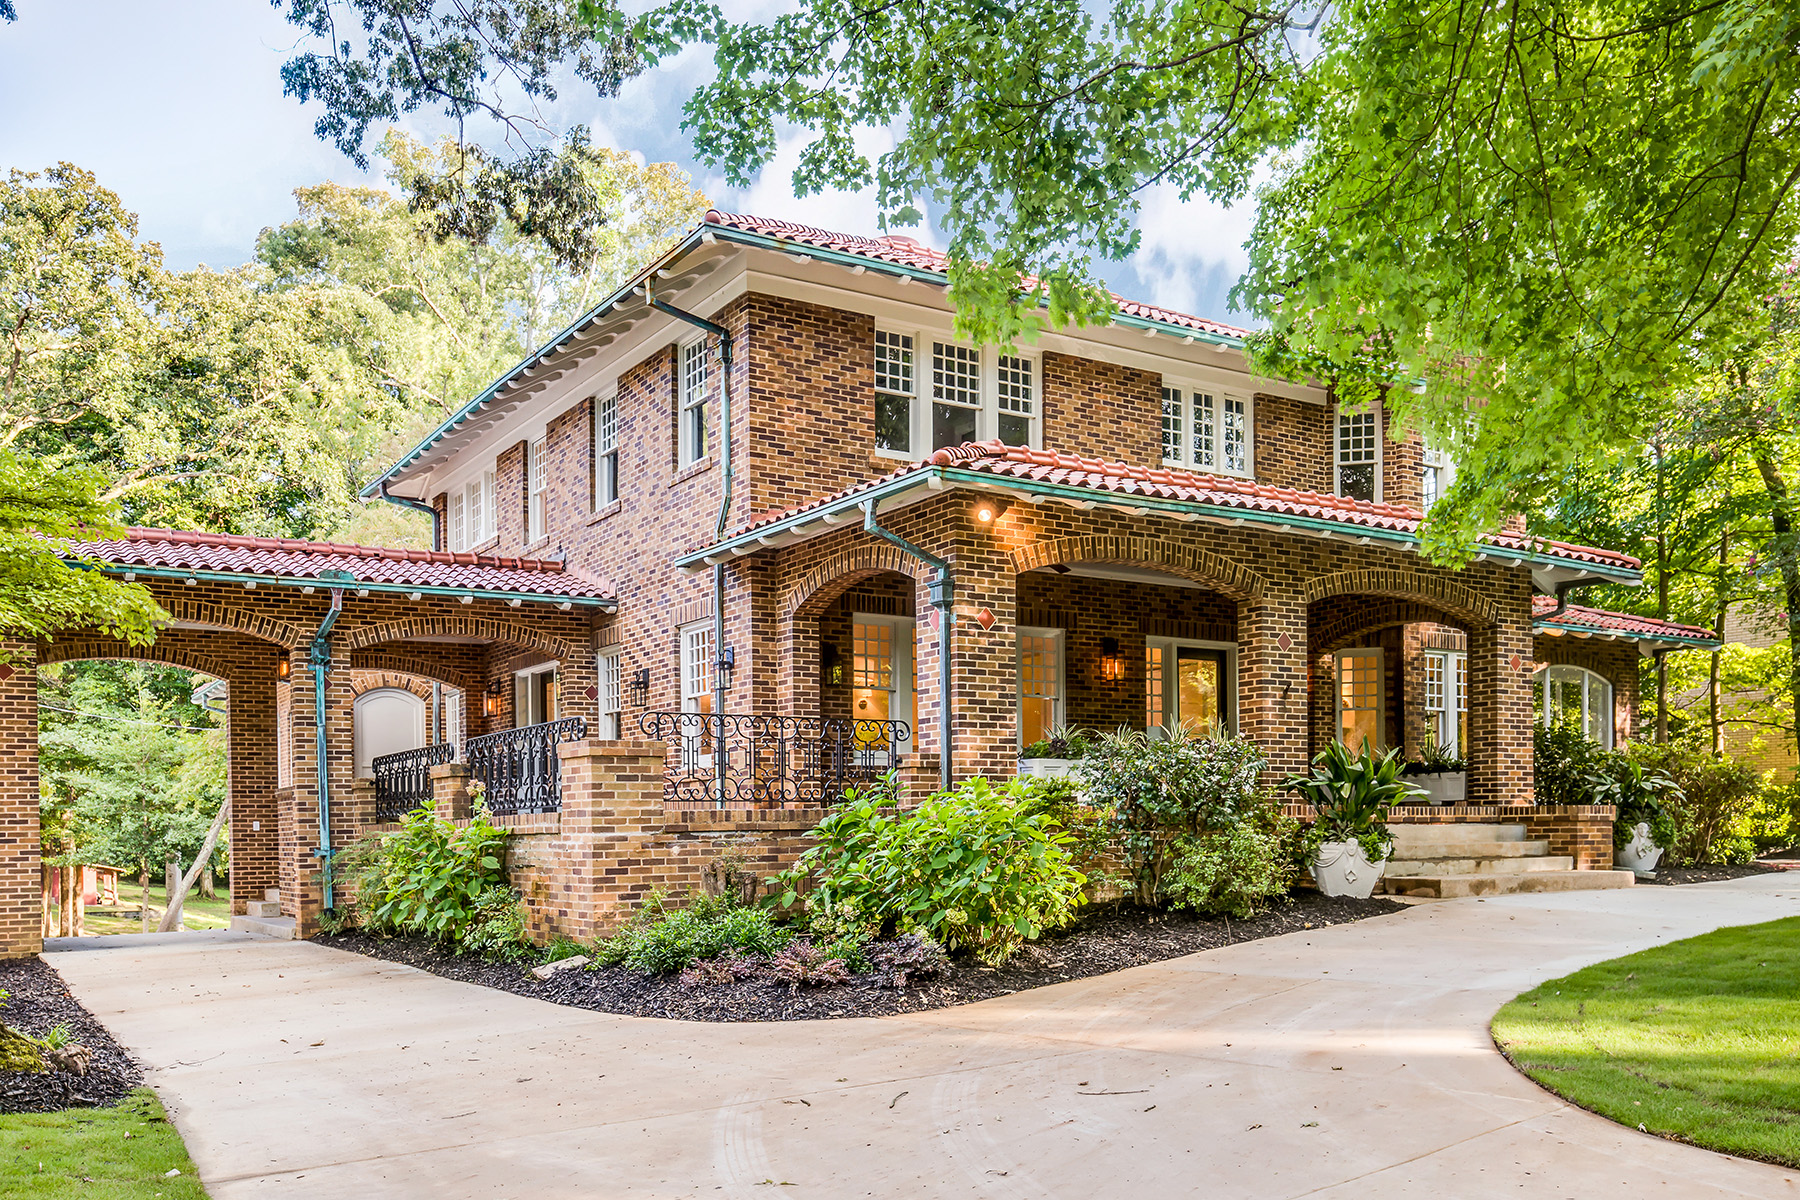 Single Family Home for Sale at Masterfully Renovated 1916 Masterpiece by Leila Ross Wilburn 923 Springdale Road Ne Atlanta, Georgia 30306 United States